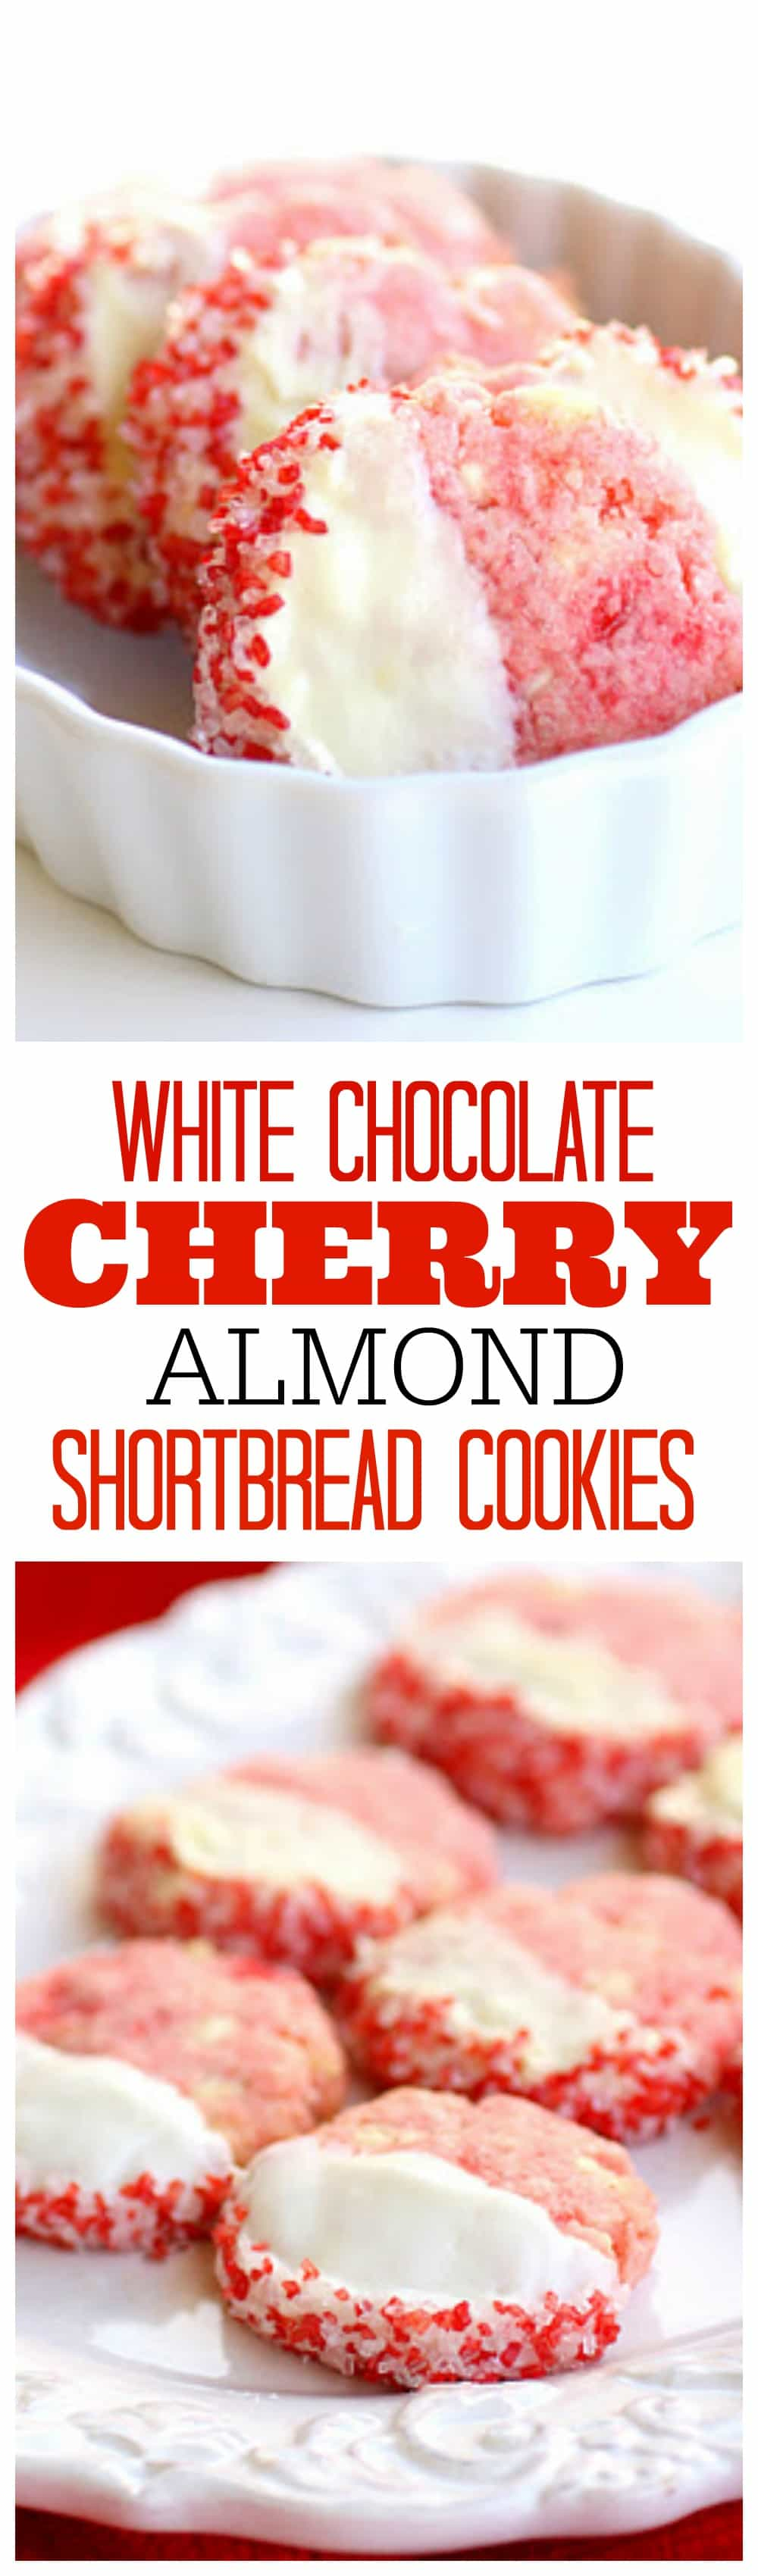 Shortbread Cherry Almond Cookies - so good and so festive. the-girl-who-ate-everything.com